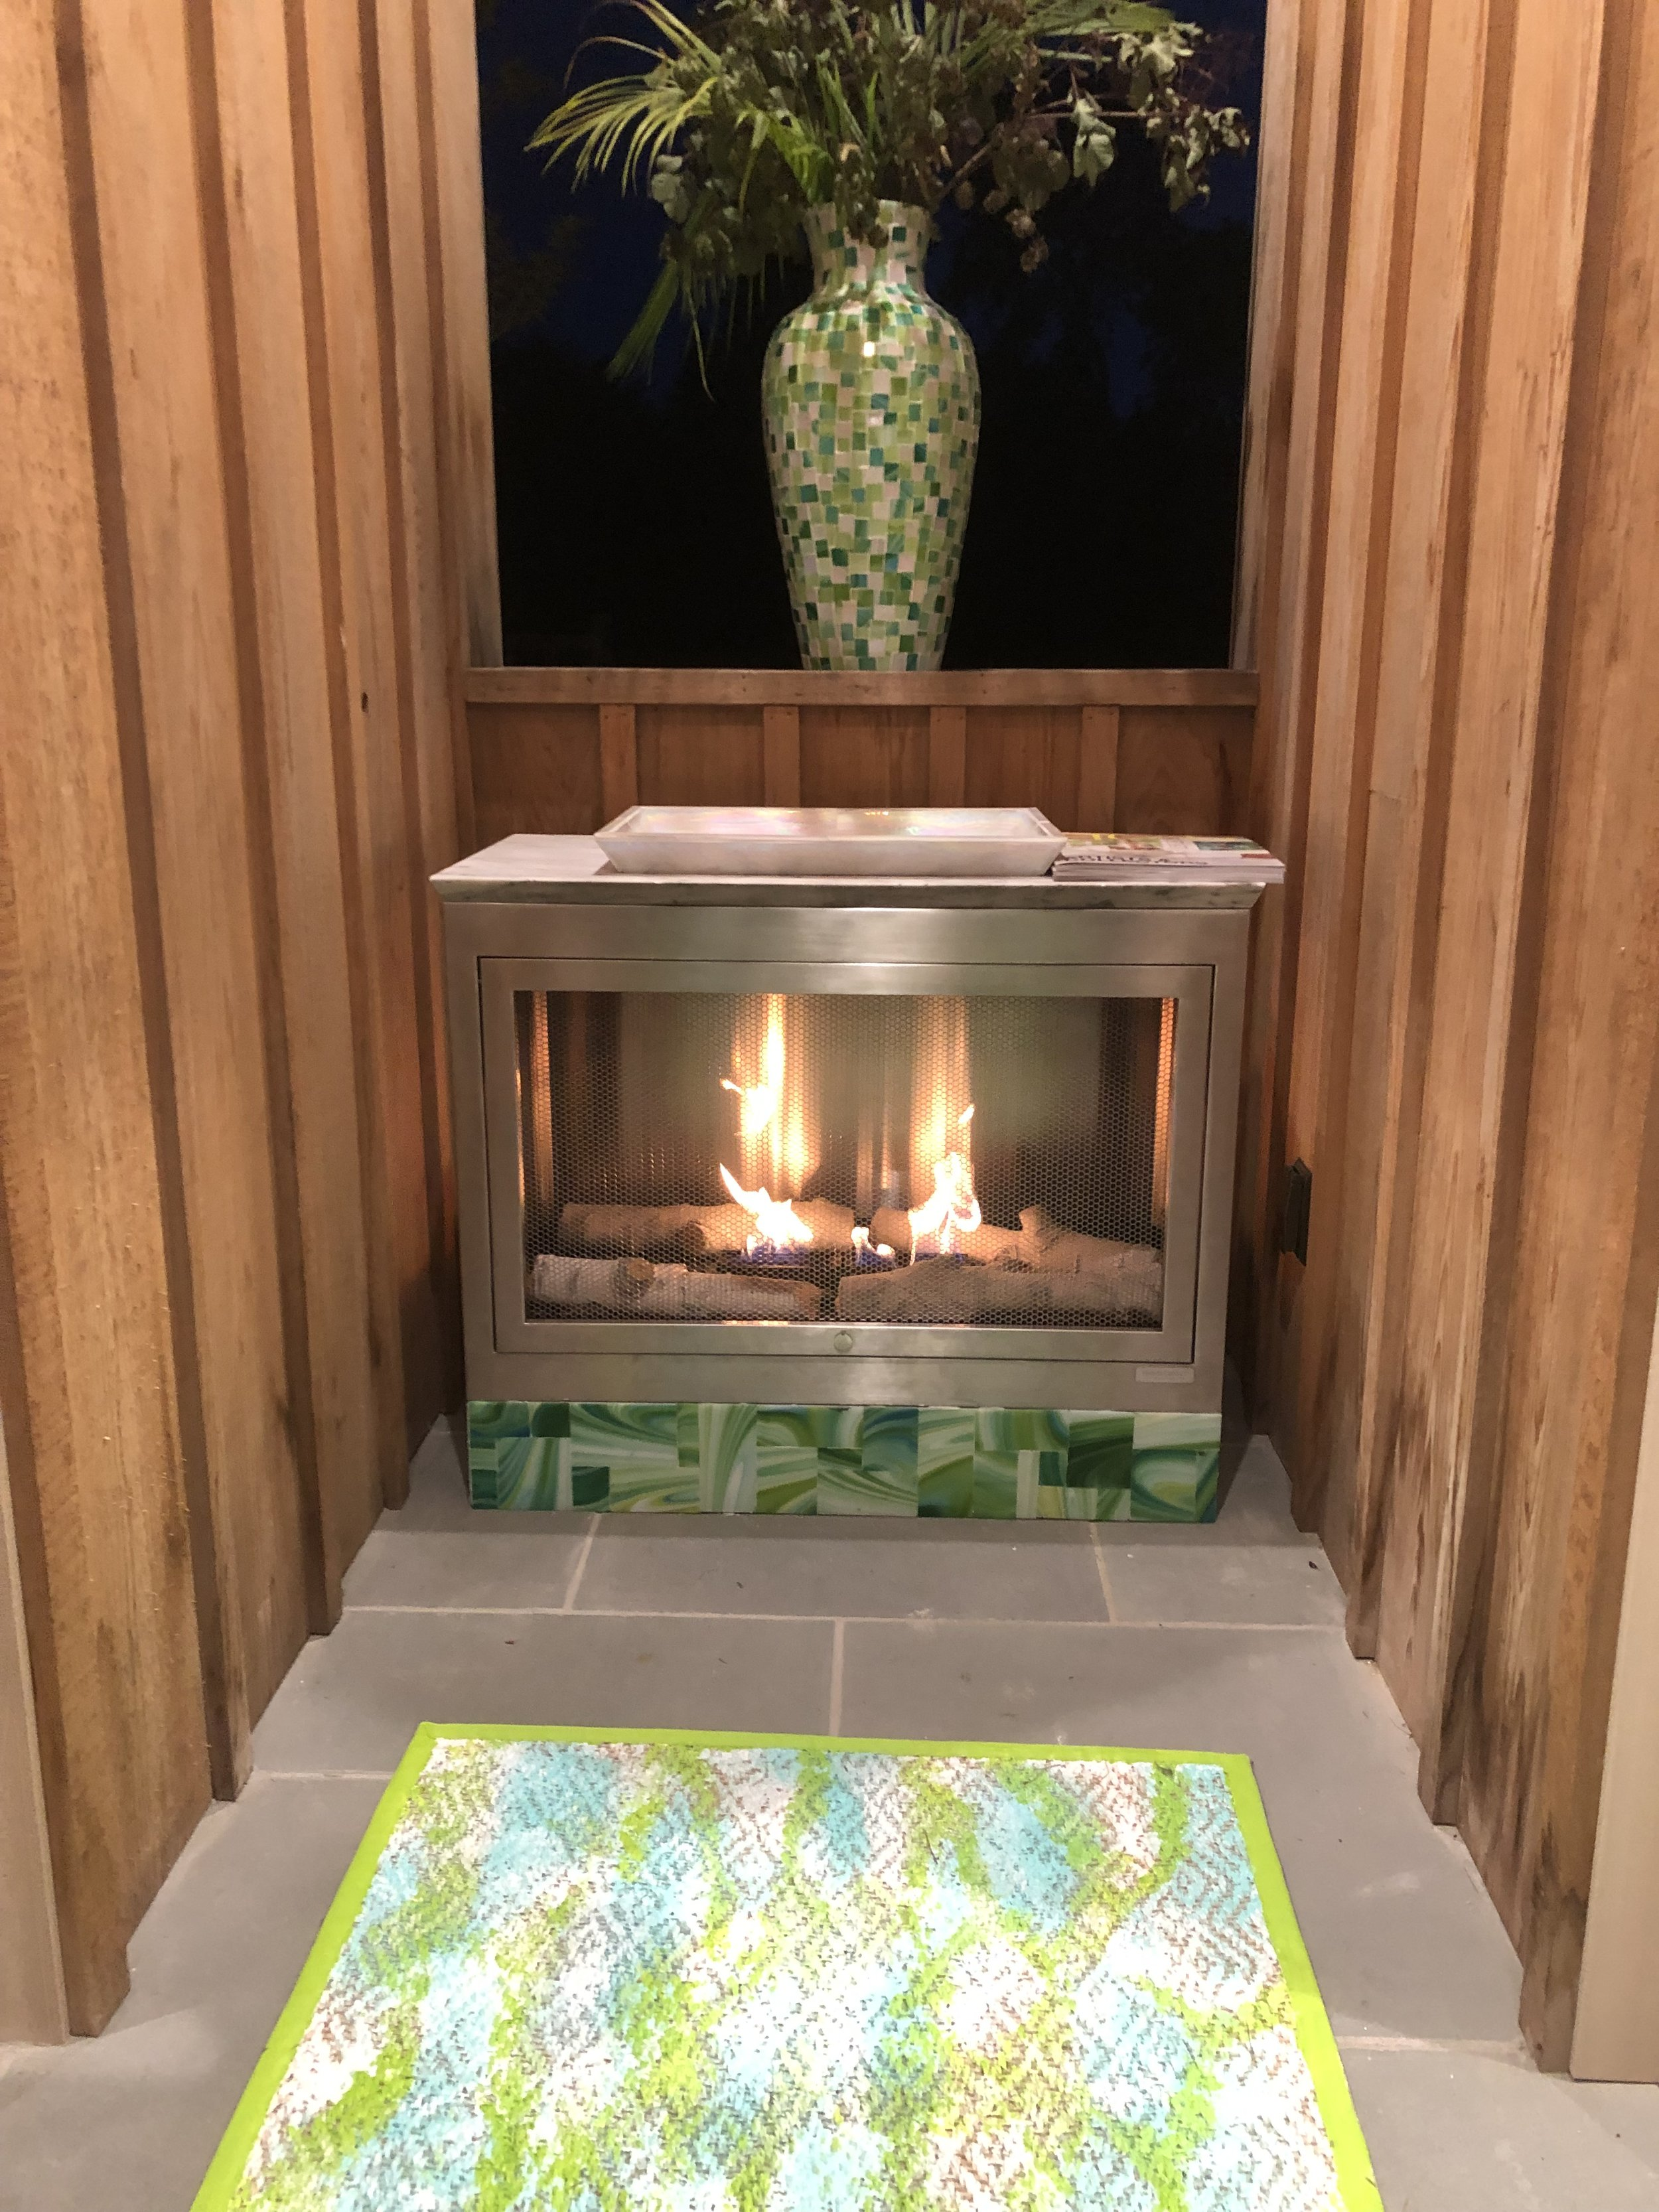 HearthCabinet's Stainless Steel three-sided outdoor unit takes center stage in the pool cabana of the Hampton House, and features a custom, handblown glass mosaic by designer, Allison Eden, in shades of green and white, accompanied by an Allison Eden hand-painted rug and mosaic vase.